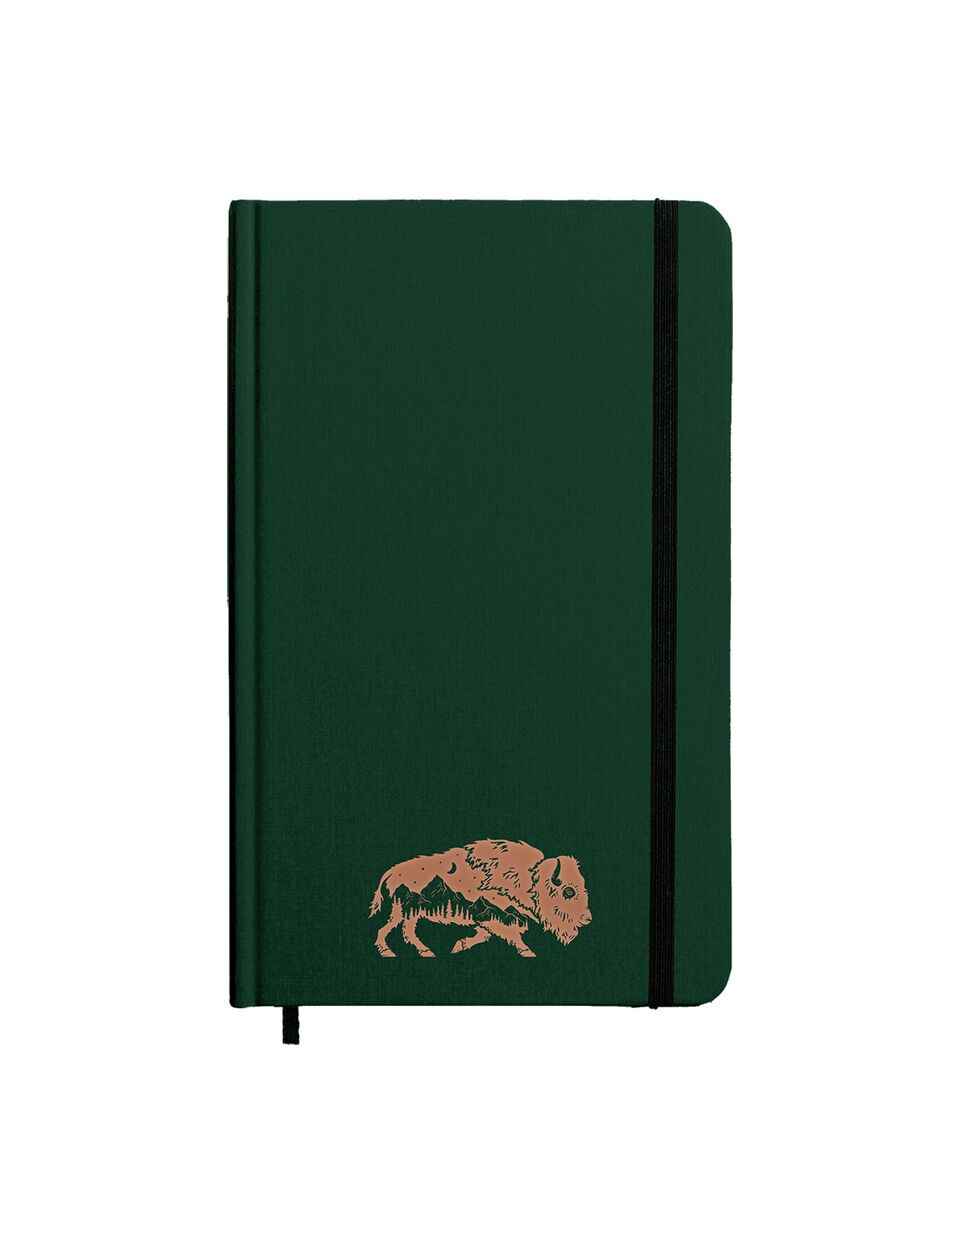 GREEN TRAVELER JOURNAL 100% RECYCLED PAPER